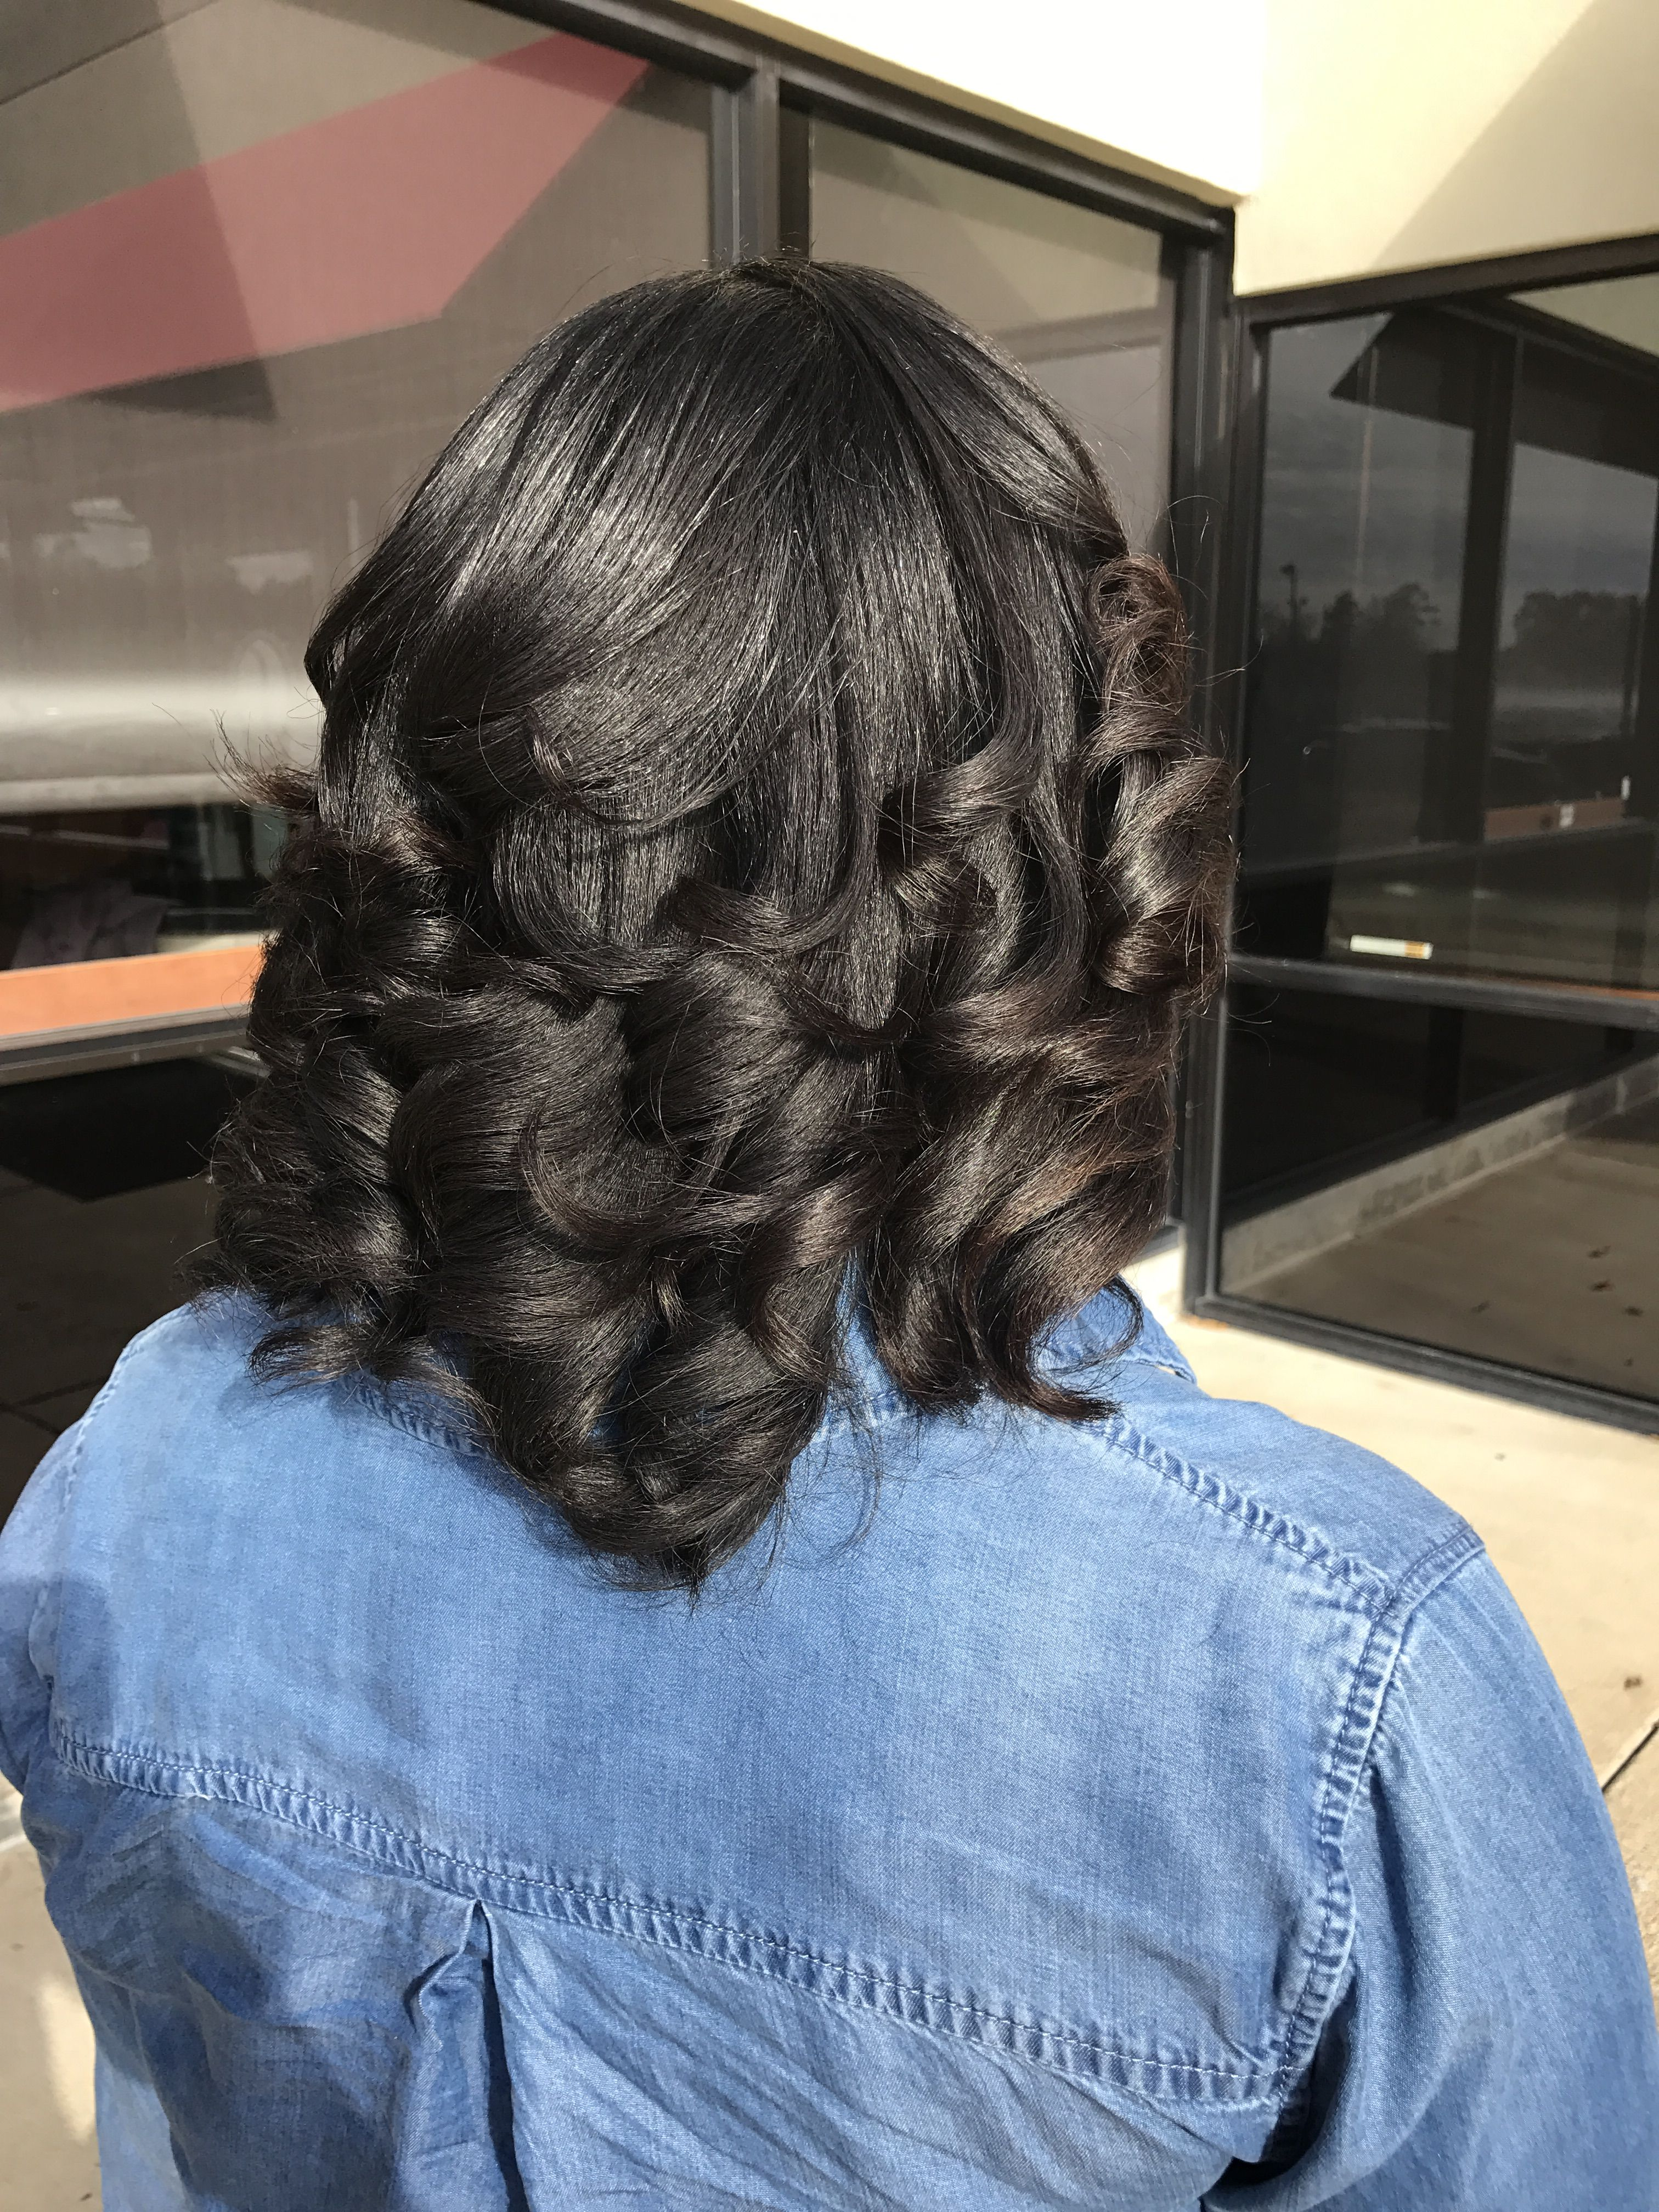 Thermal Relaxing A Child S Hair With A Feather Flat Iron Thoughts Video Black Hair Informat Flat Iron Hair Styles Flat Iron Natural Hair Kids Hairstyles